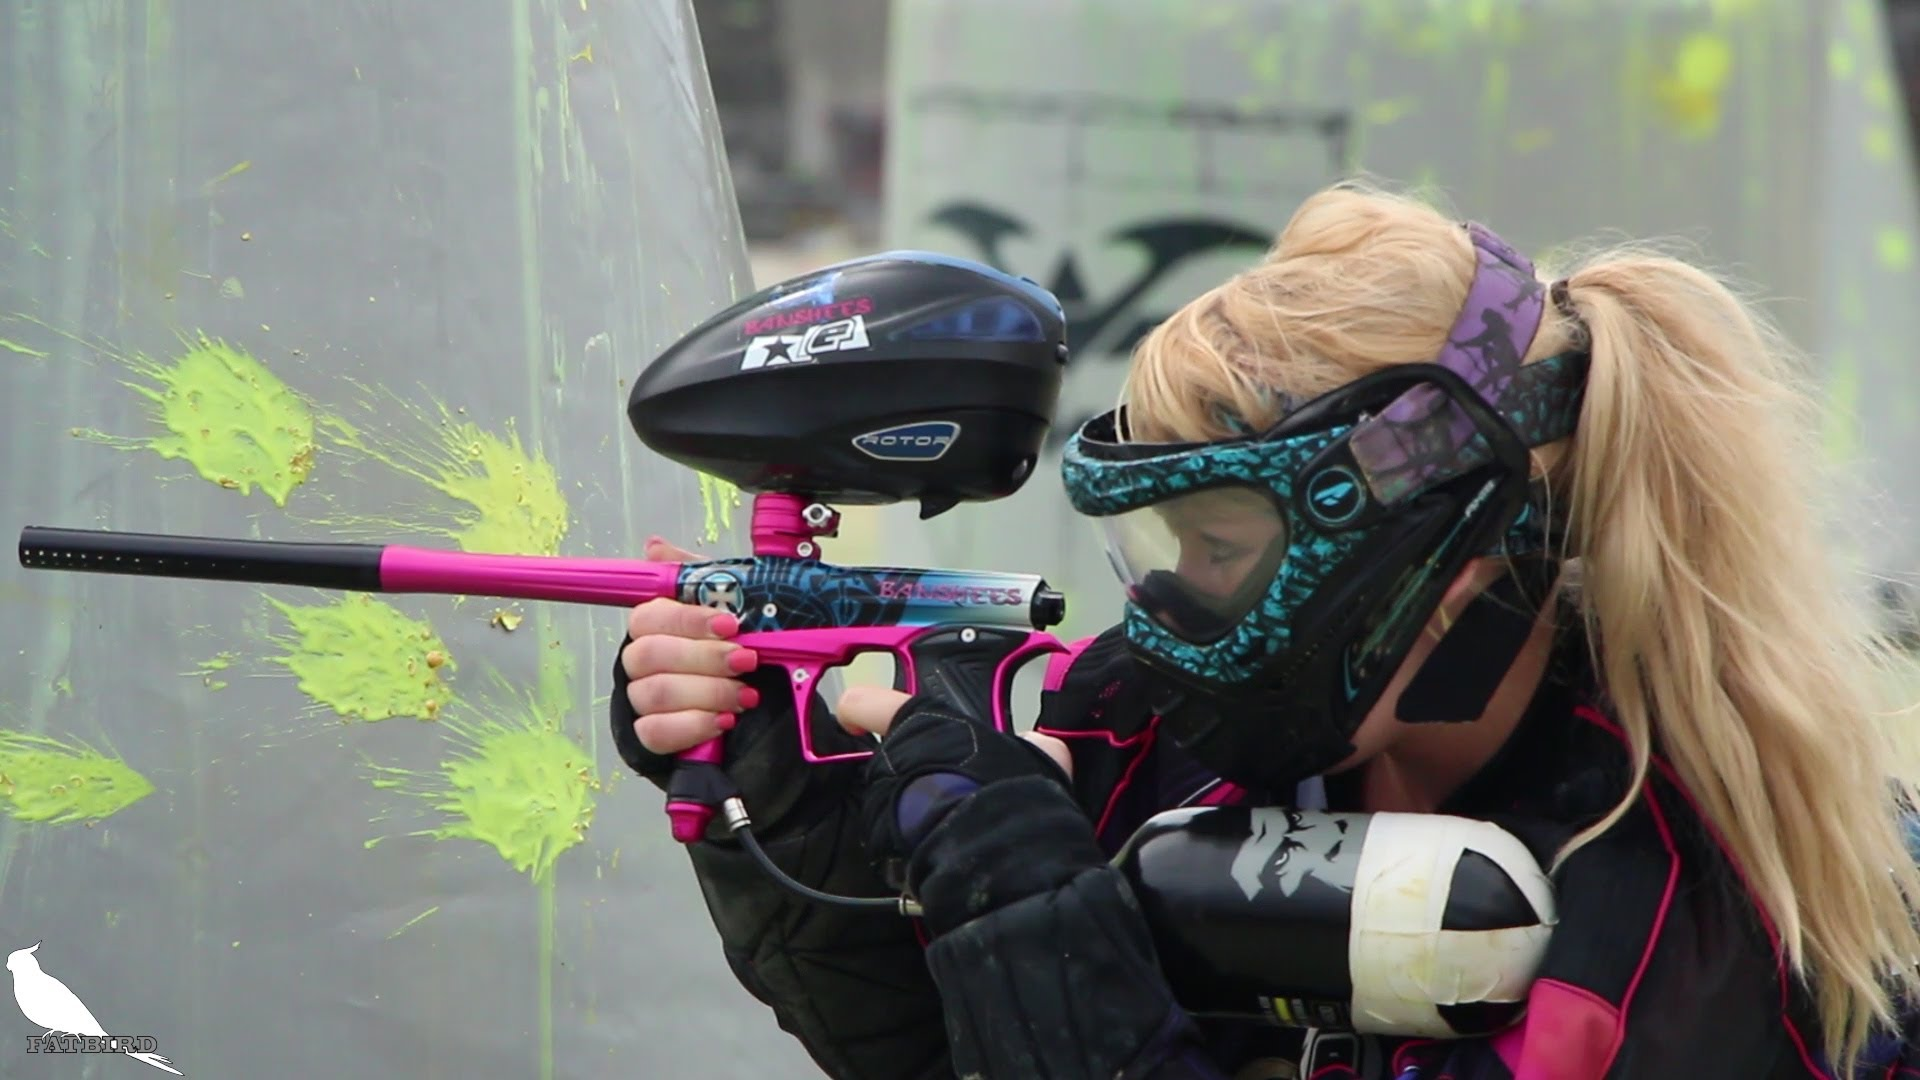 Sexy paintball outfit for girls